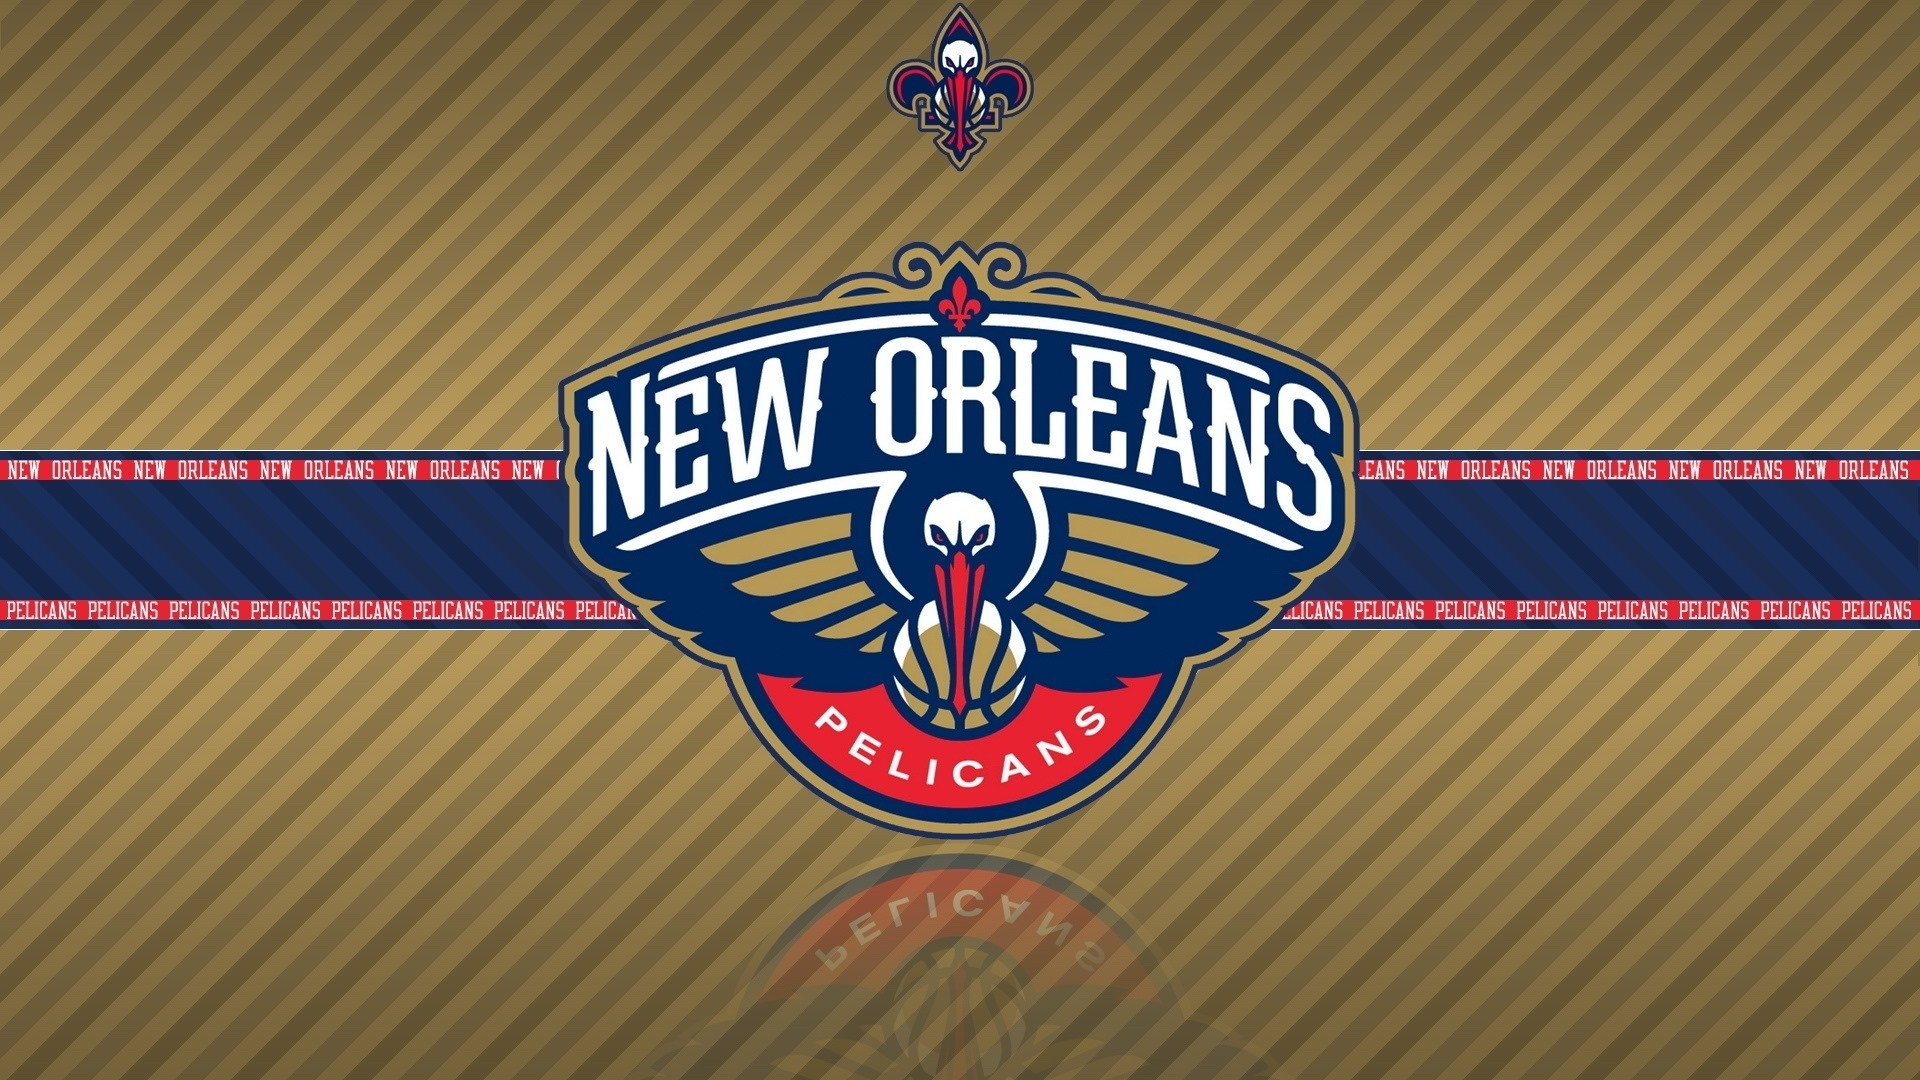 new orleans pelicans computer wallpapers 32583 - baltana